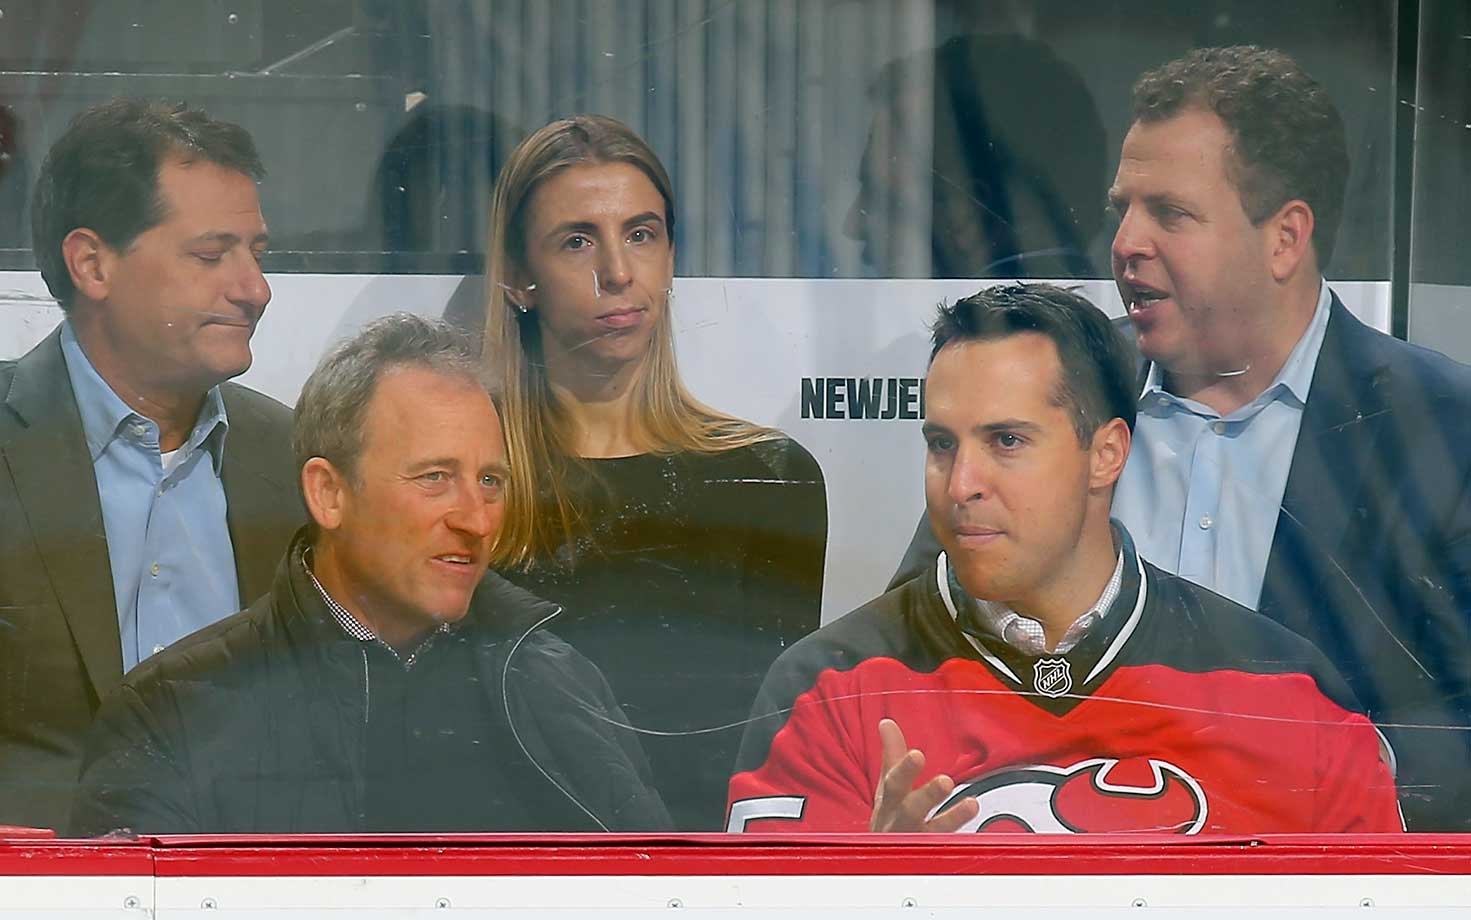 New Jersey Devils owner Josh Harris takes in the game against the Ottawa Senators with Mark Teixeira of the New York Yankees.